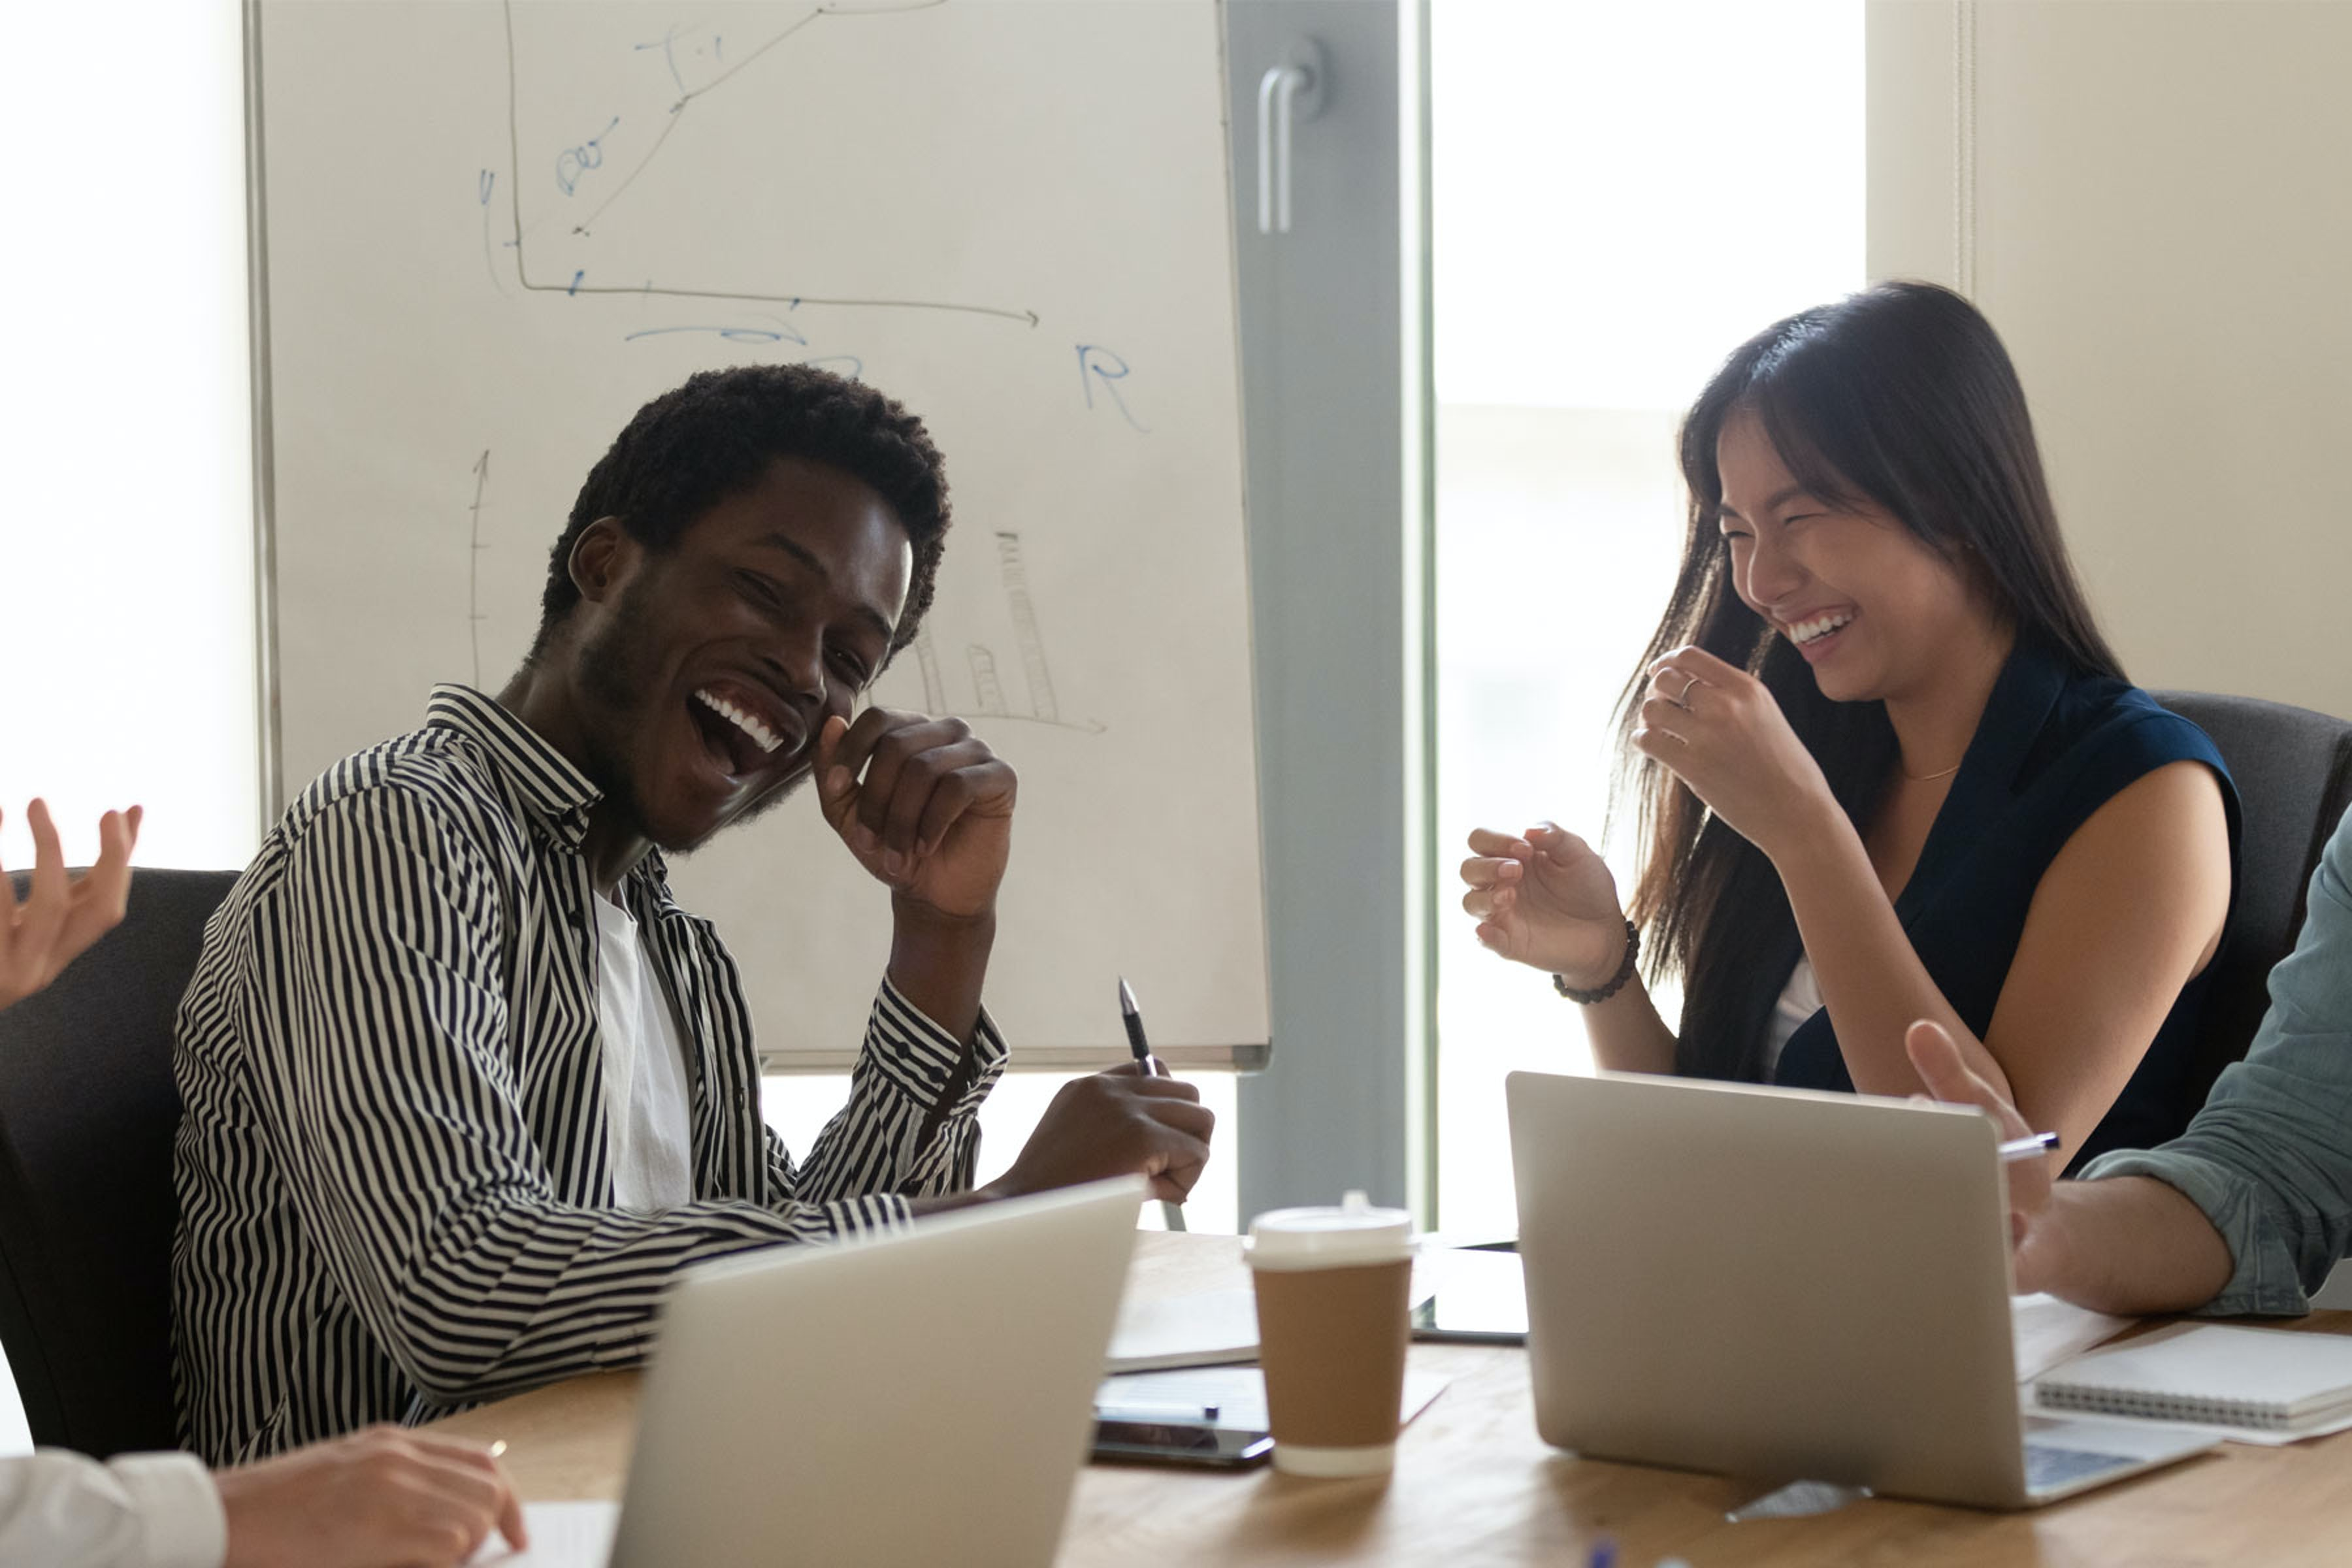 employees laughing in a meeting or office